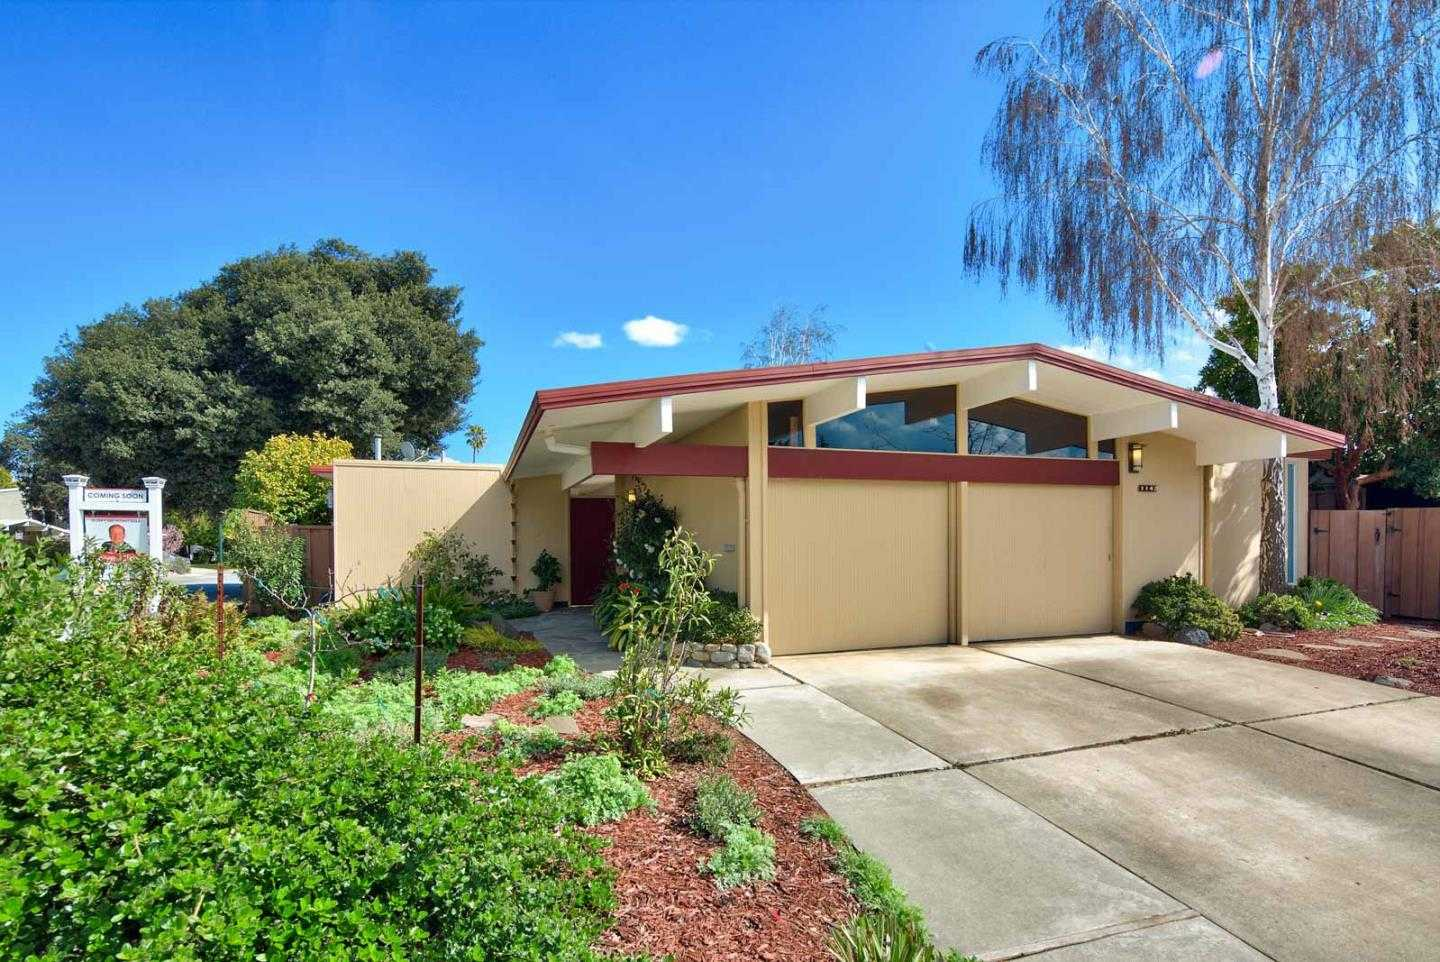 $1,968,000 - 3Br/2Ba -  for Sale in Sunnyvale